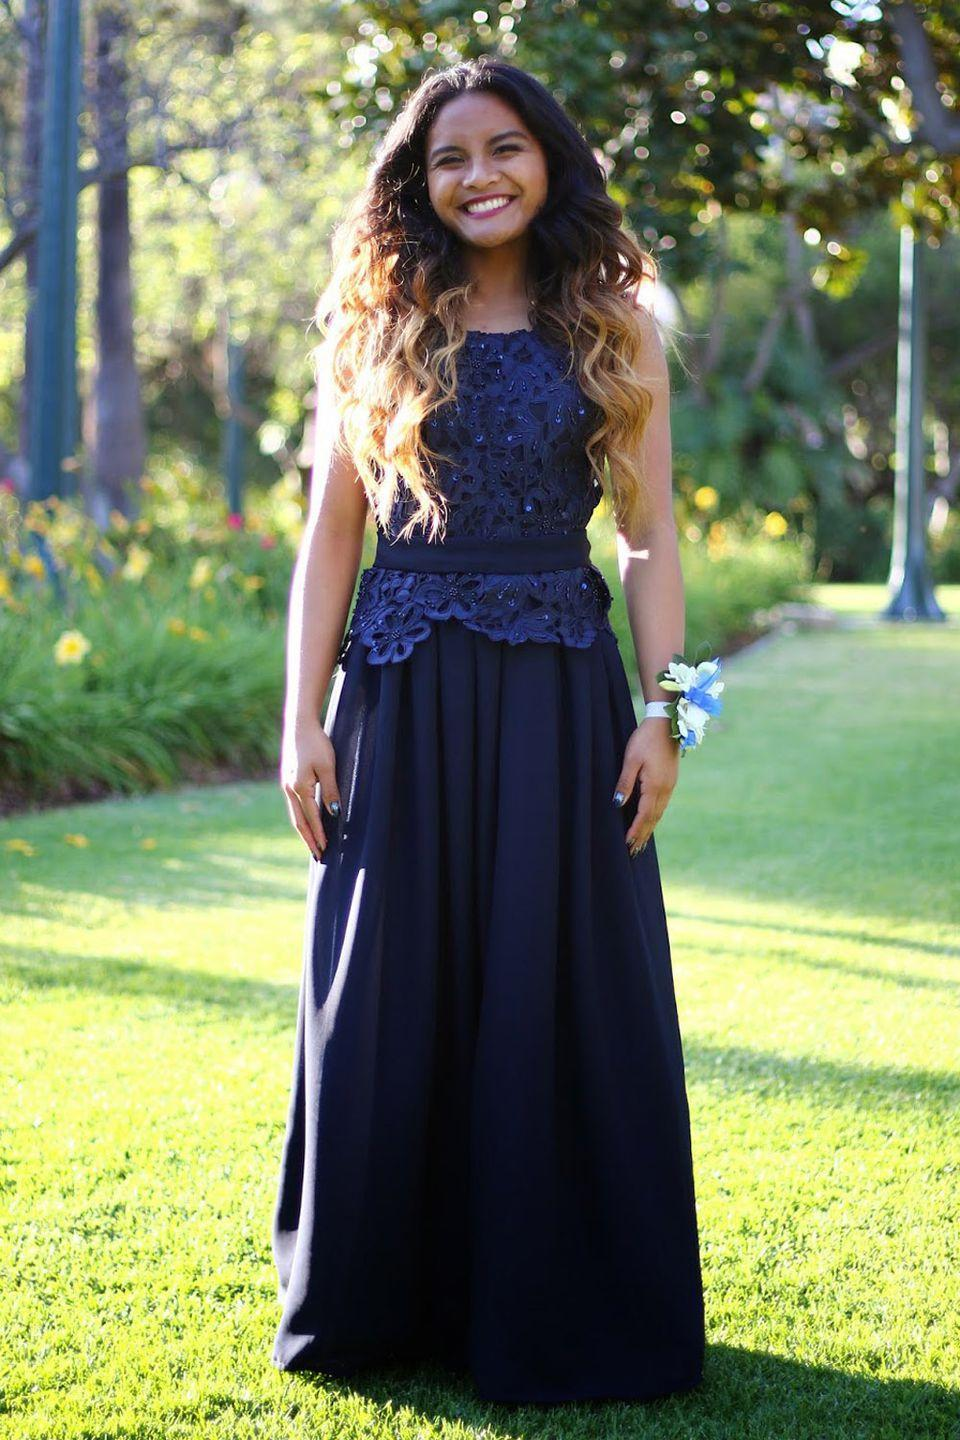 """<p><a href=""""http://atlofysabel.blogspot.com/"""" rel=""""nofollow noopener"""" target=""""_blank"""" data-ylk=""""slk:Ysabel"""" class=""""link rapid-noclick-resp"""">Ysabel</a> designed her prom dress in only a week! """"I learned how to use a sewing machine from my dad, and other than that I am purely self taught from trial and error,"""" she told Seventeen.com. """"I have been sewing since the 8th grade and fell in love with it ever since.""""</p>"""